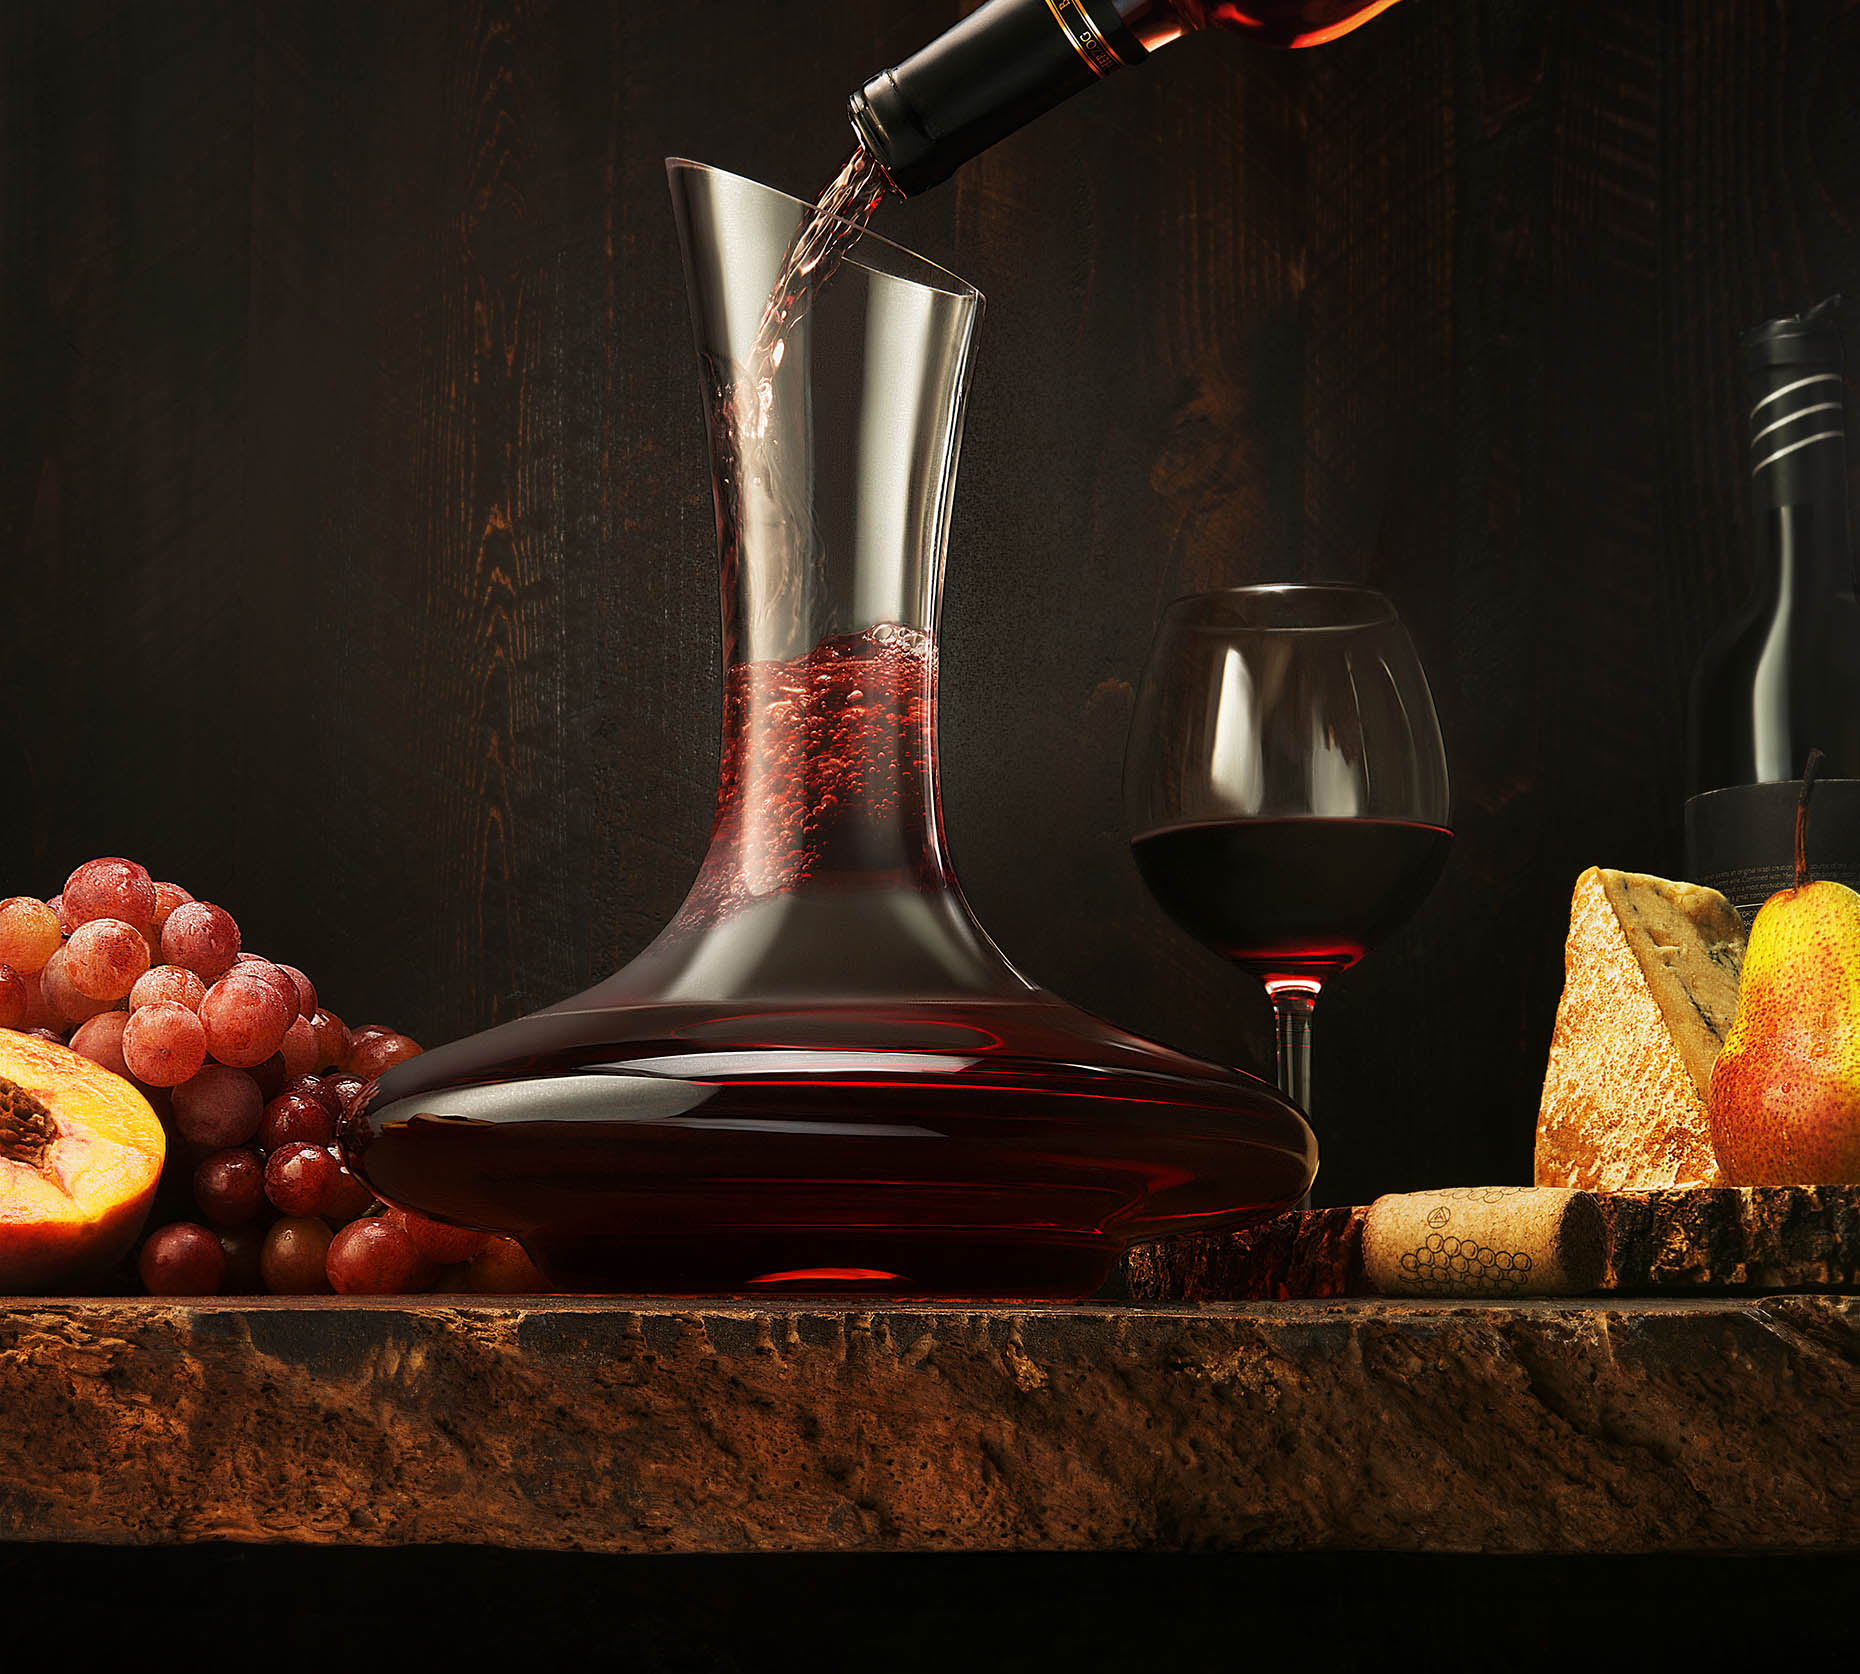 New-york-beverage-photography-still-life-wine-decander